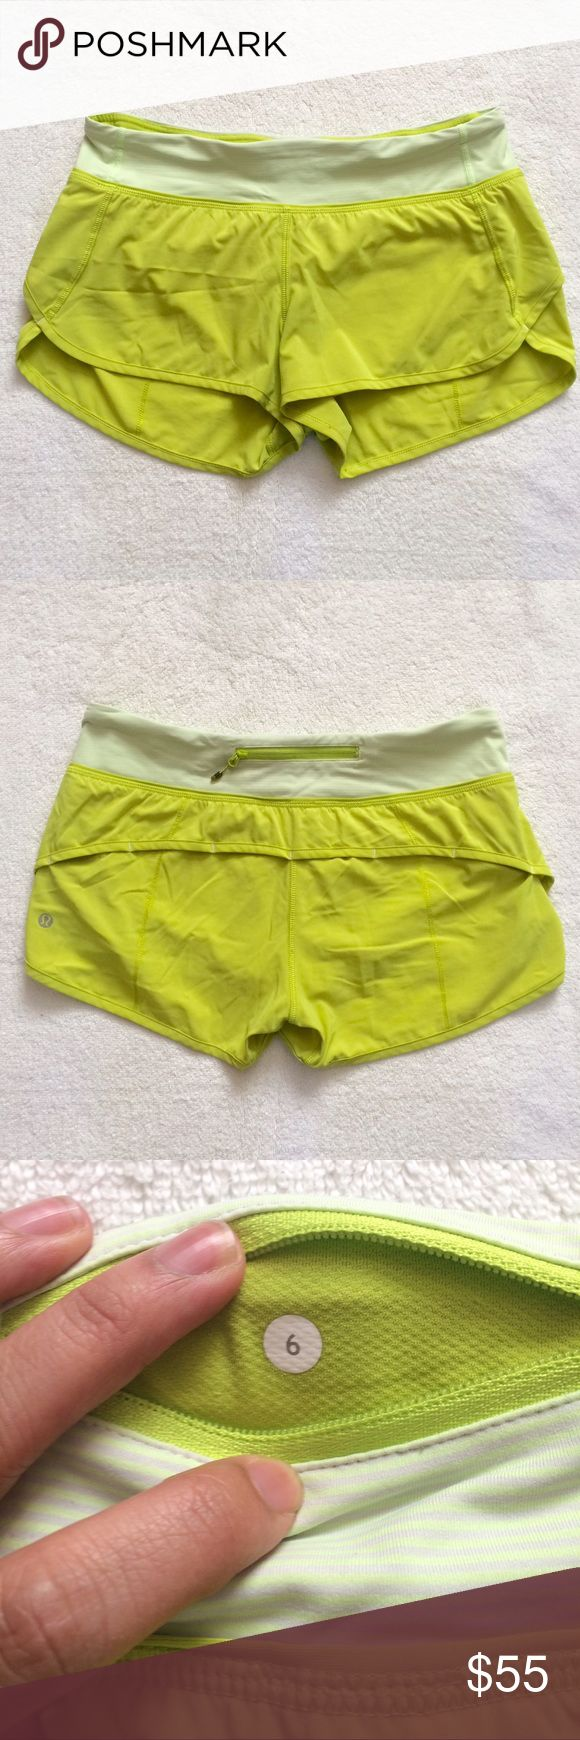 Lululemon Speed Shorts Neon Green Mint Stripe 6 Lululemon Speed Shorts. I think they are neon green with mint stripe. No rips or stains. Comes from a smoke free home.  Size 6 lululemon athletica Shorts